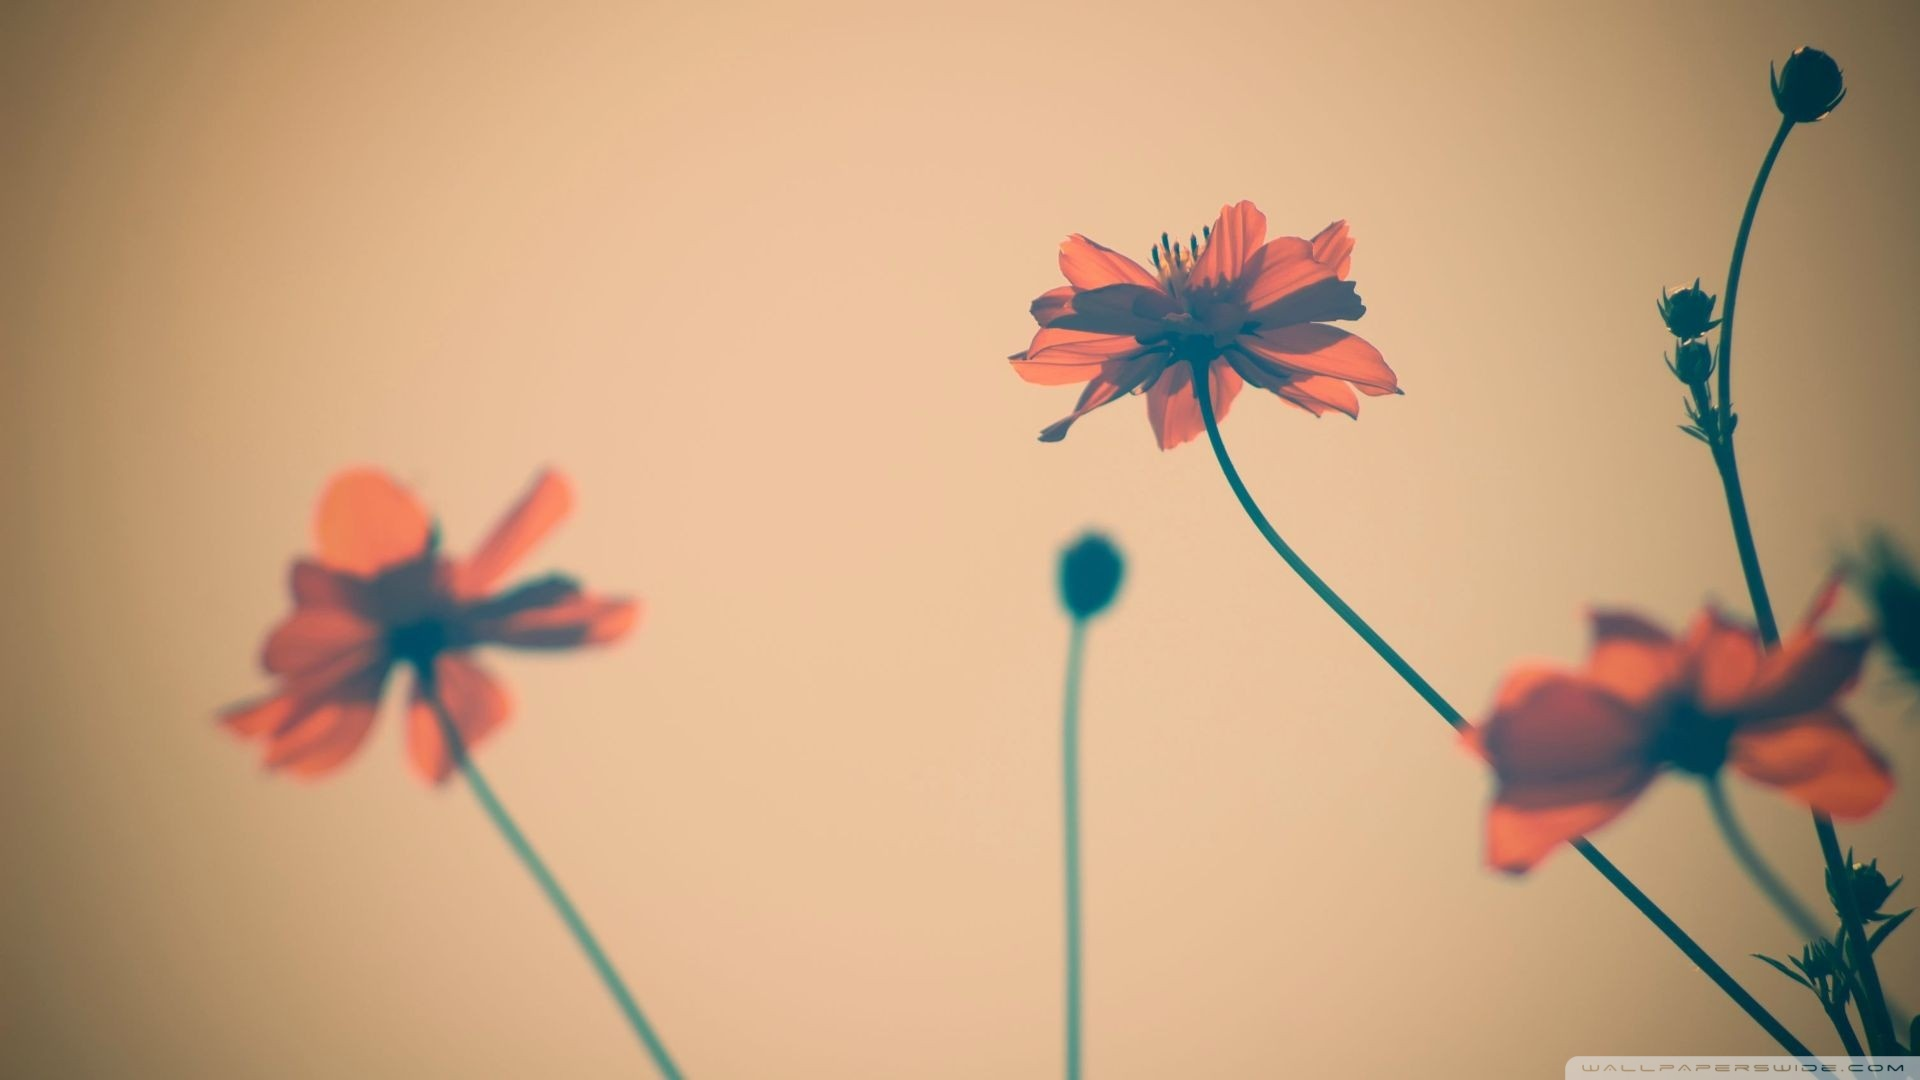 flower-tumblr-wallpaper7